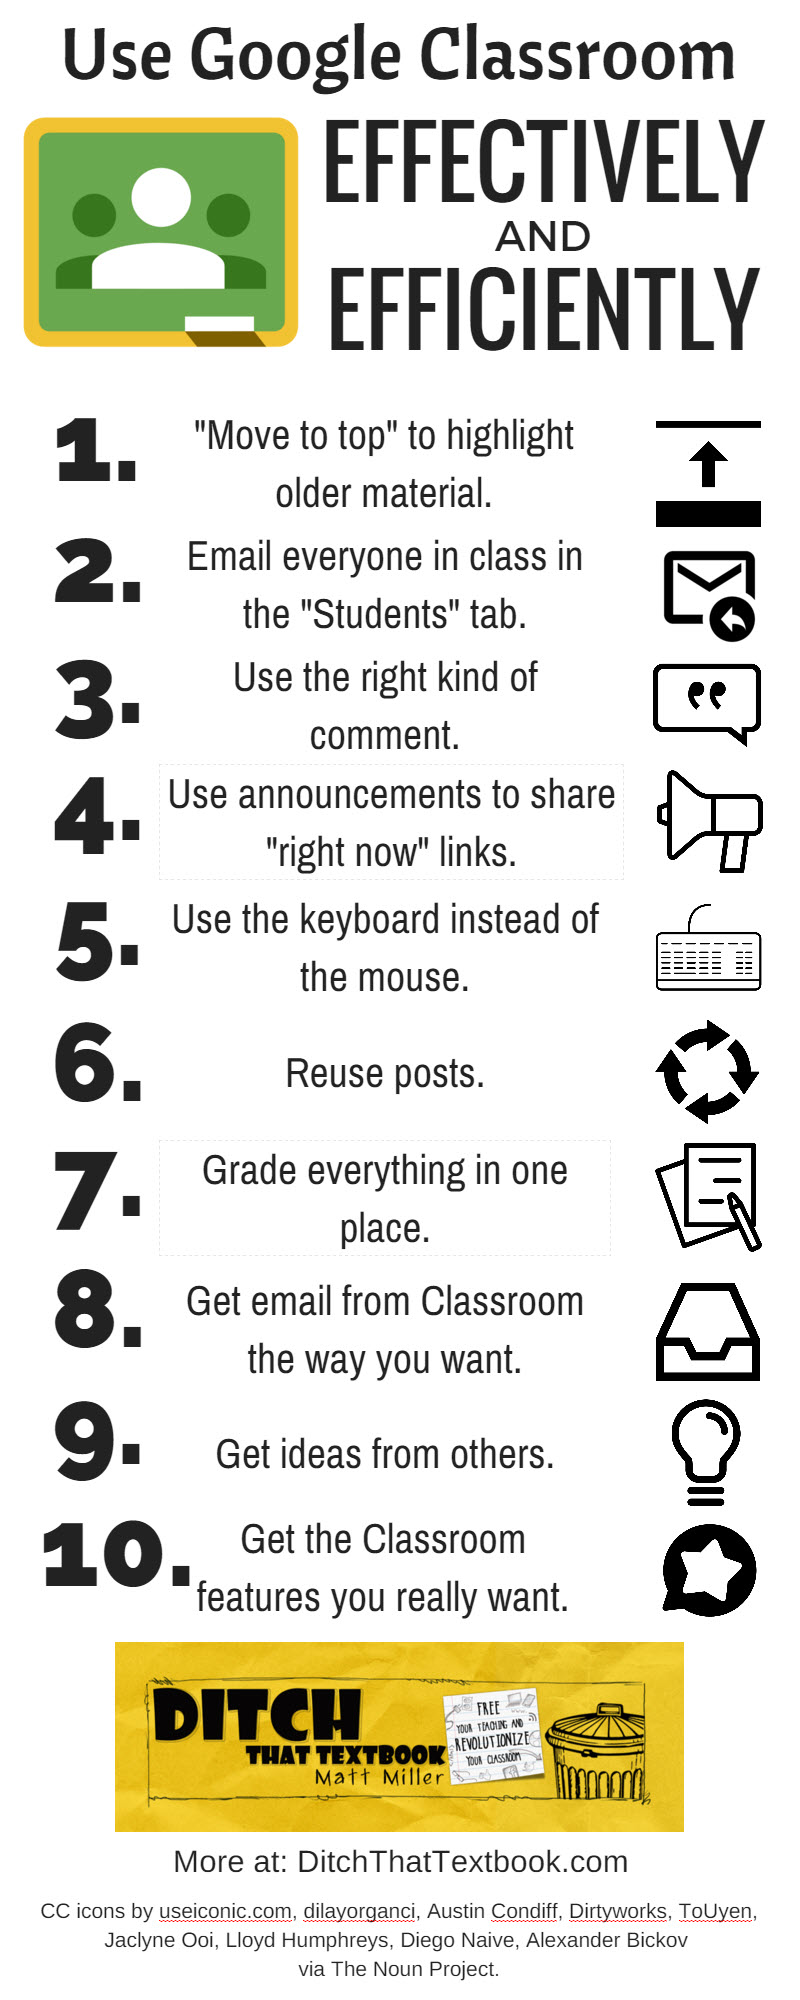 Classroom Management Ideas For 5th Grade ~ Tips to use google classroom effectively and